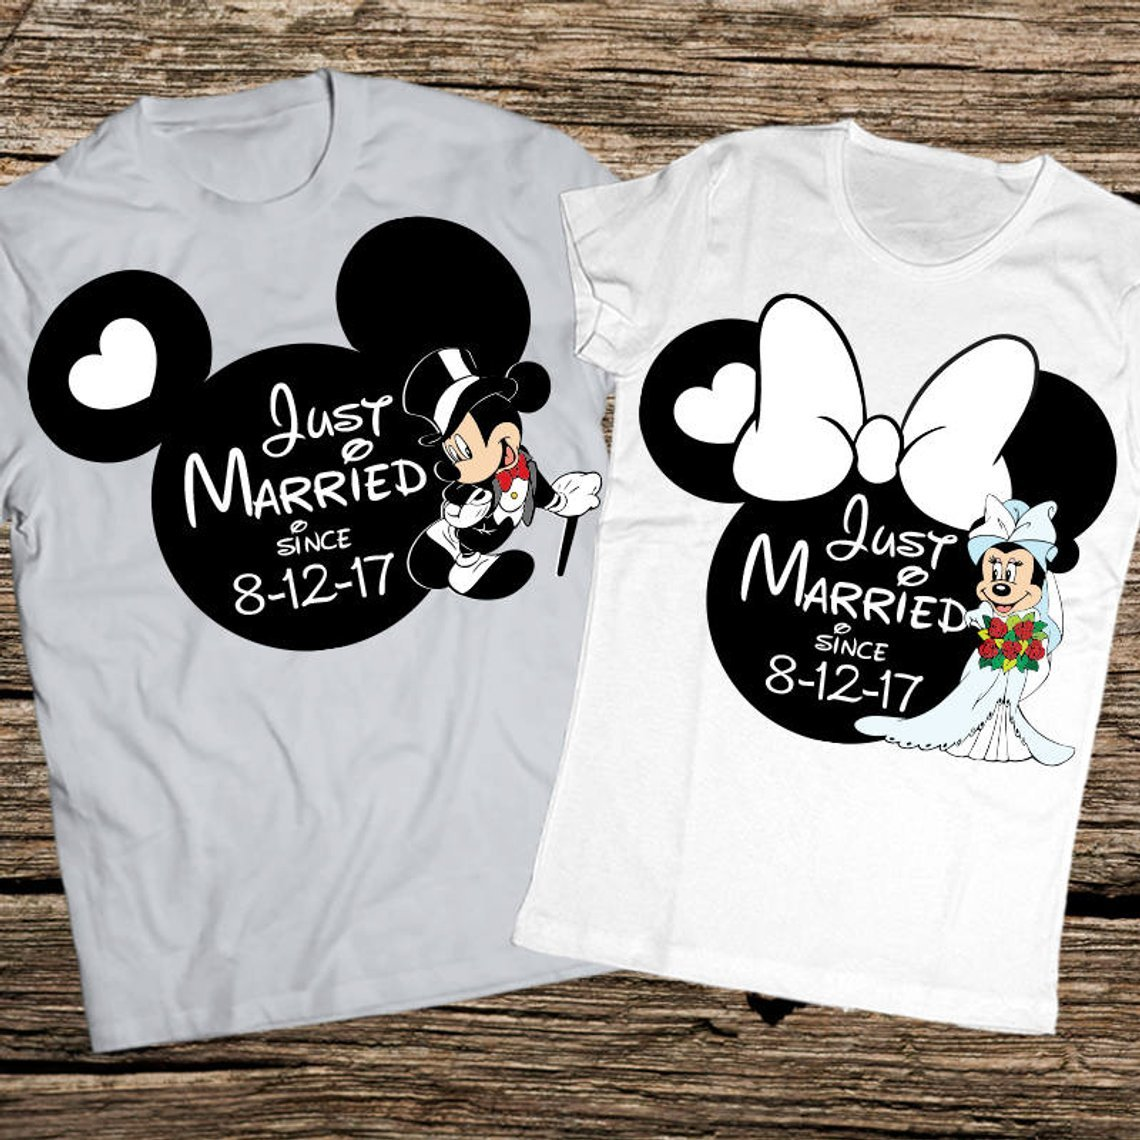 93b1eec0b rocker wife t shirt · Just Married Wedding Date Disney Shirts · Check Price  · rocker ...